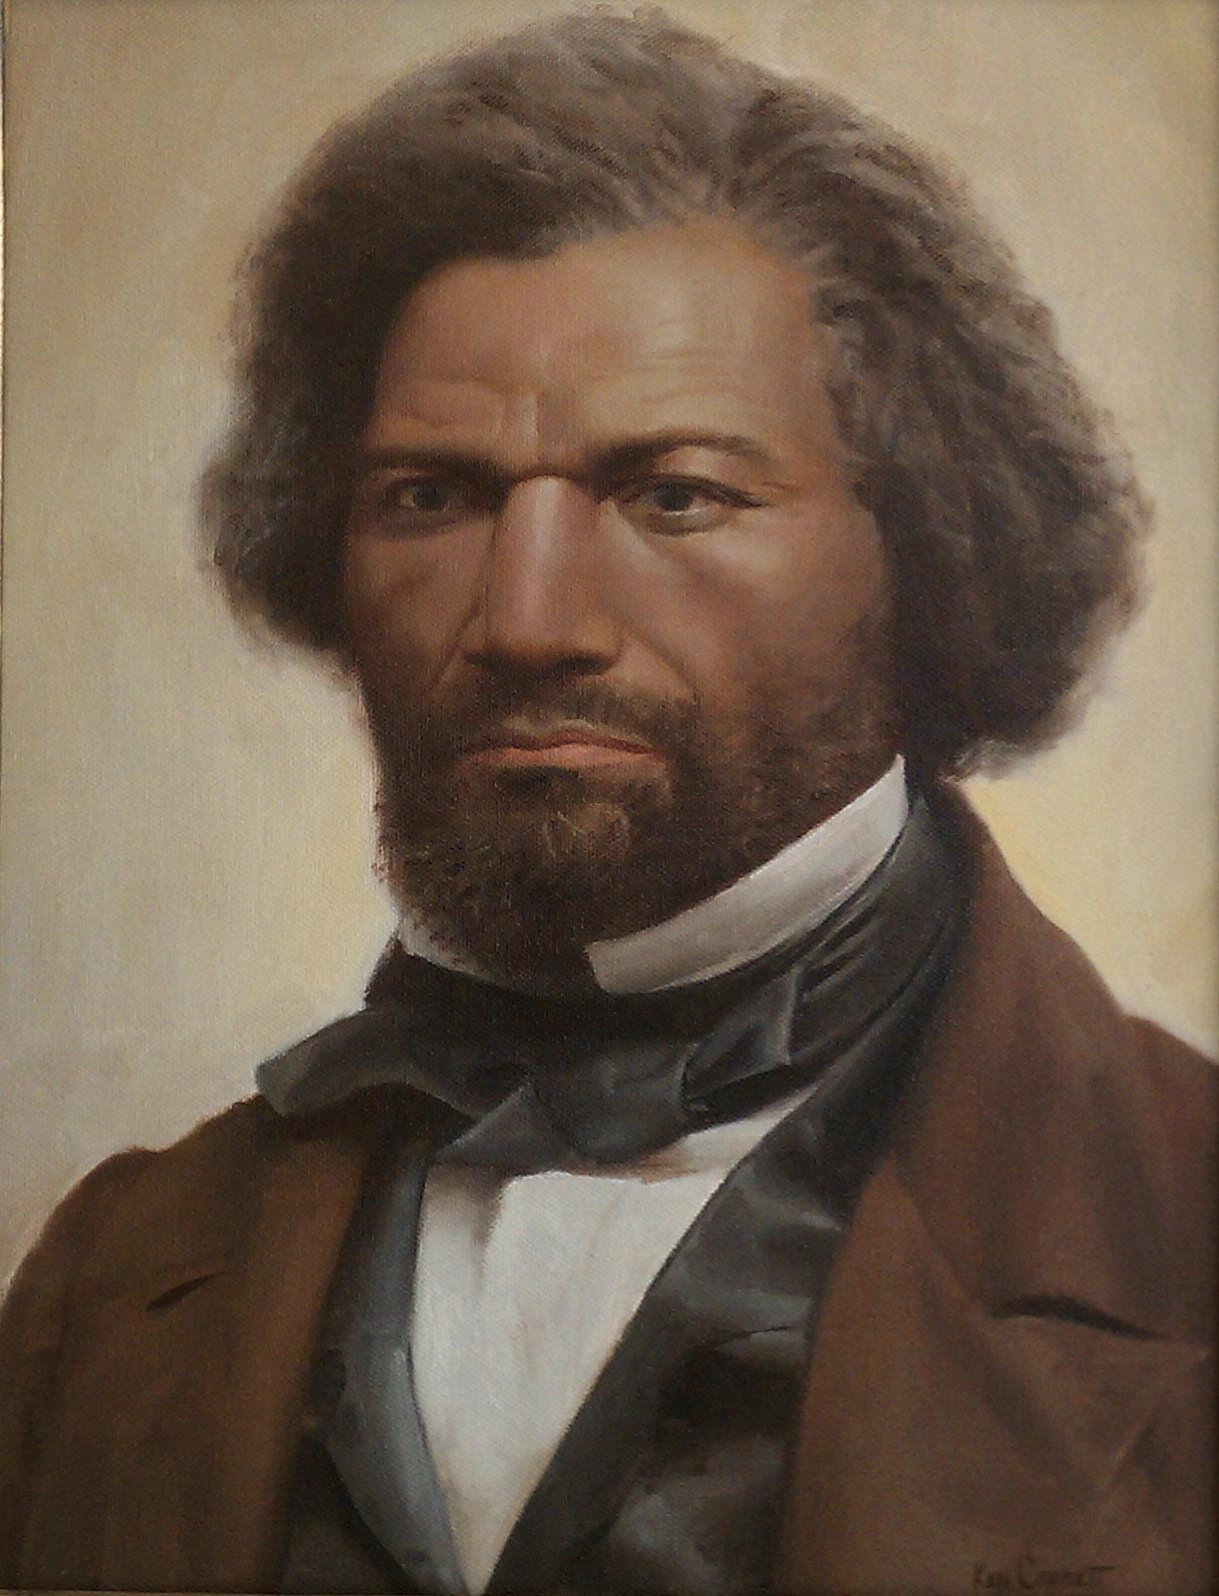 frederick douglas Visit biographycom to learn more about the life and times of frederick douglass, the famed 19th-century abolitionist leader and us gov't official whose writings continue to be read widely today.